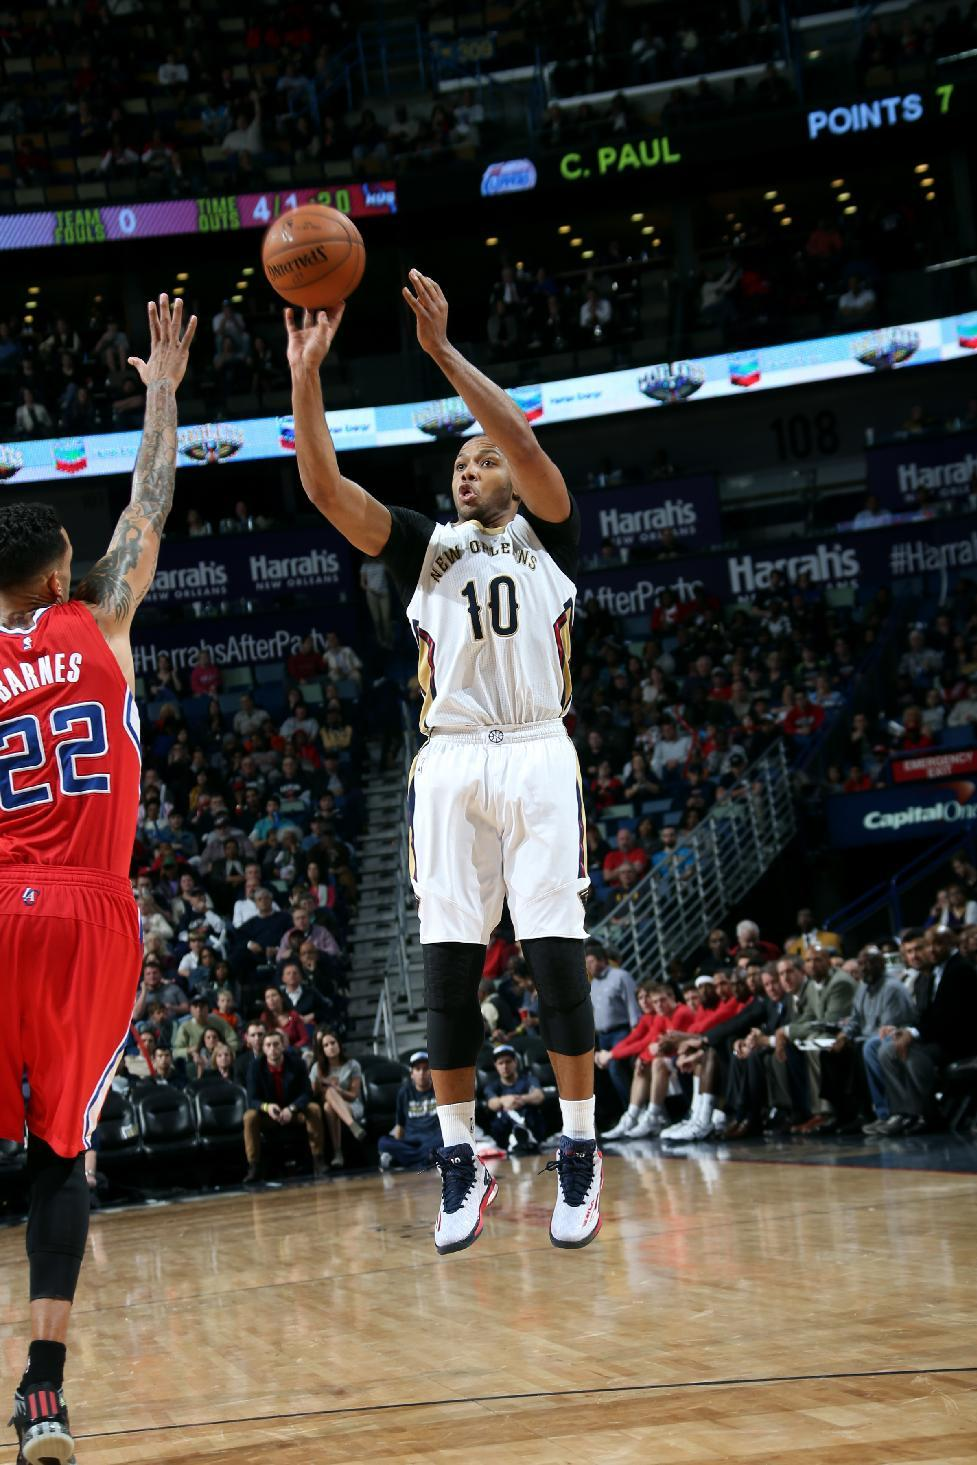 Gordon leads Davis-less Pelicans past Clippers, 108-103